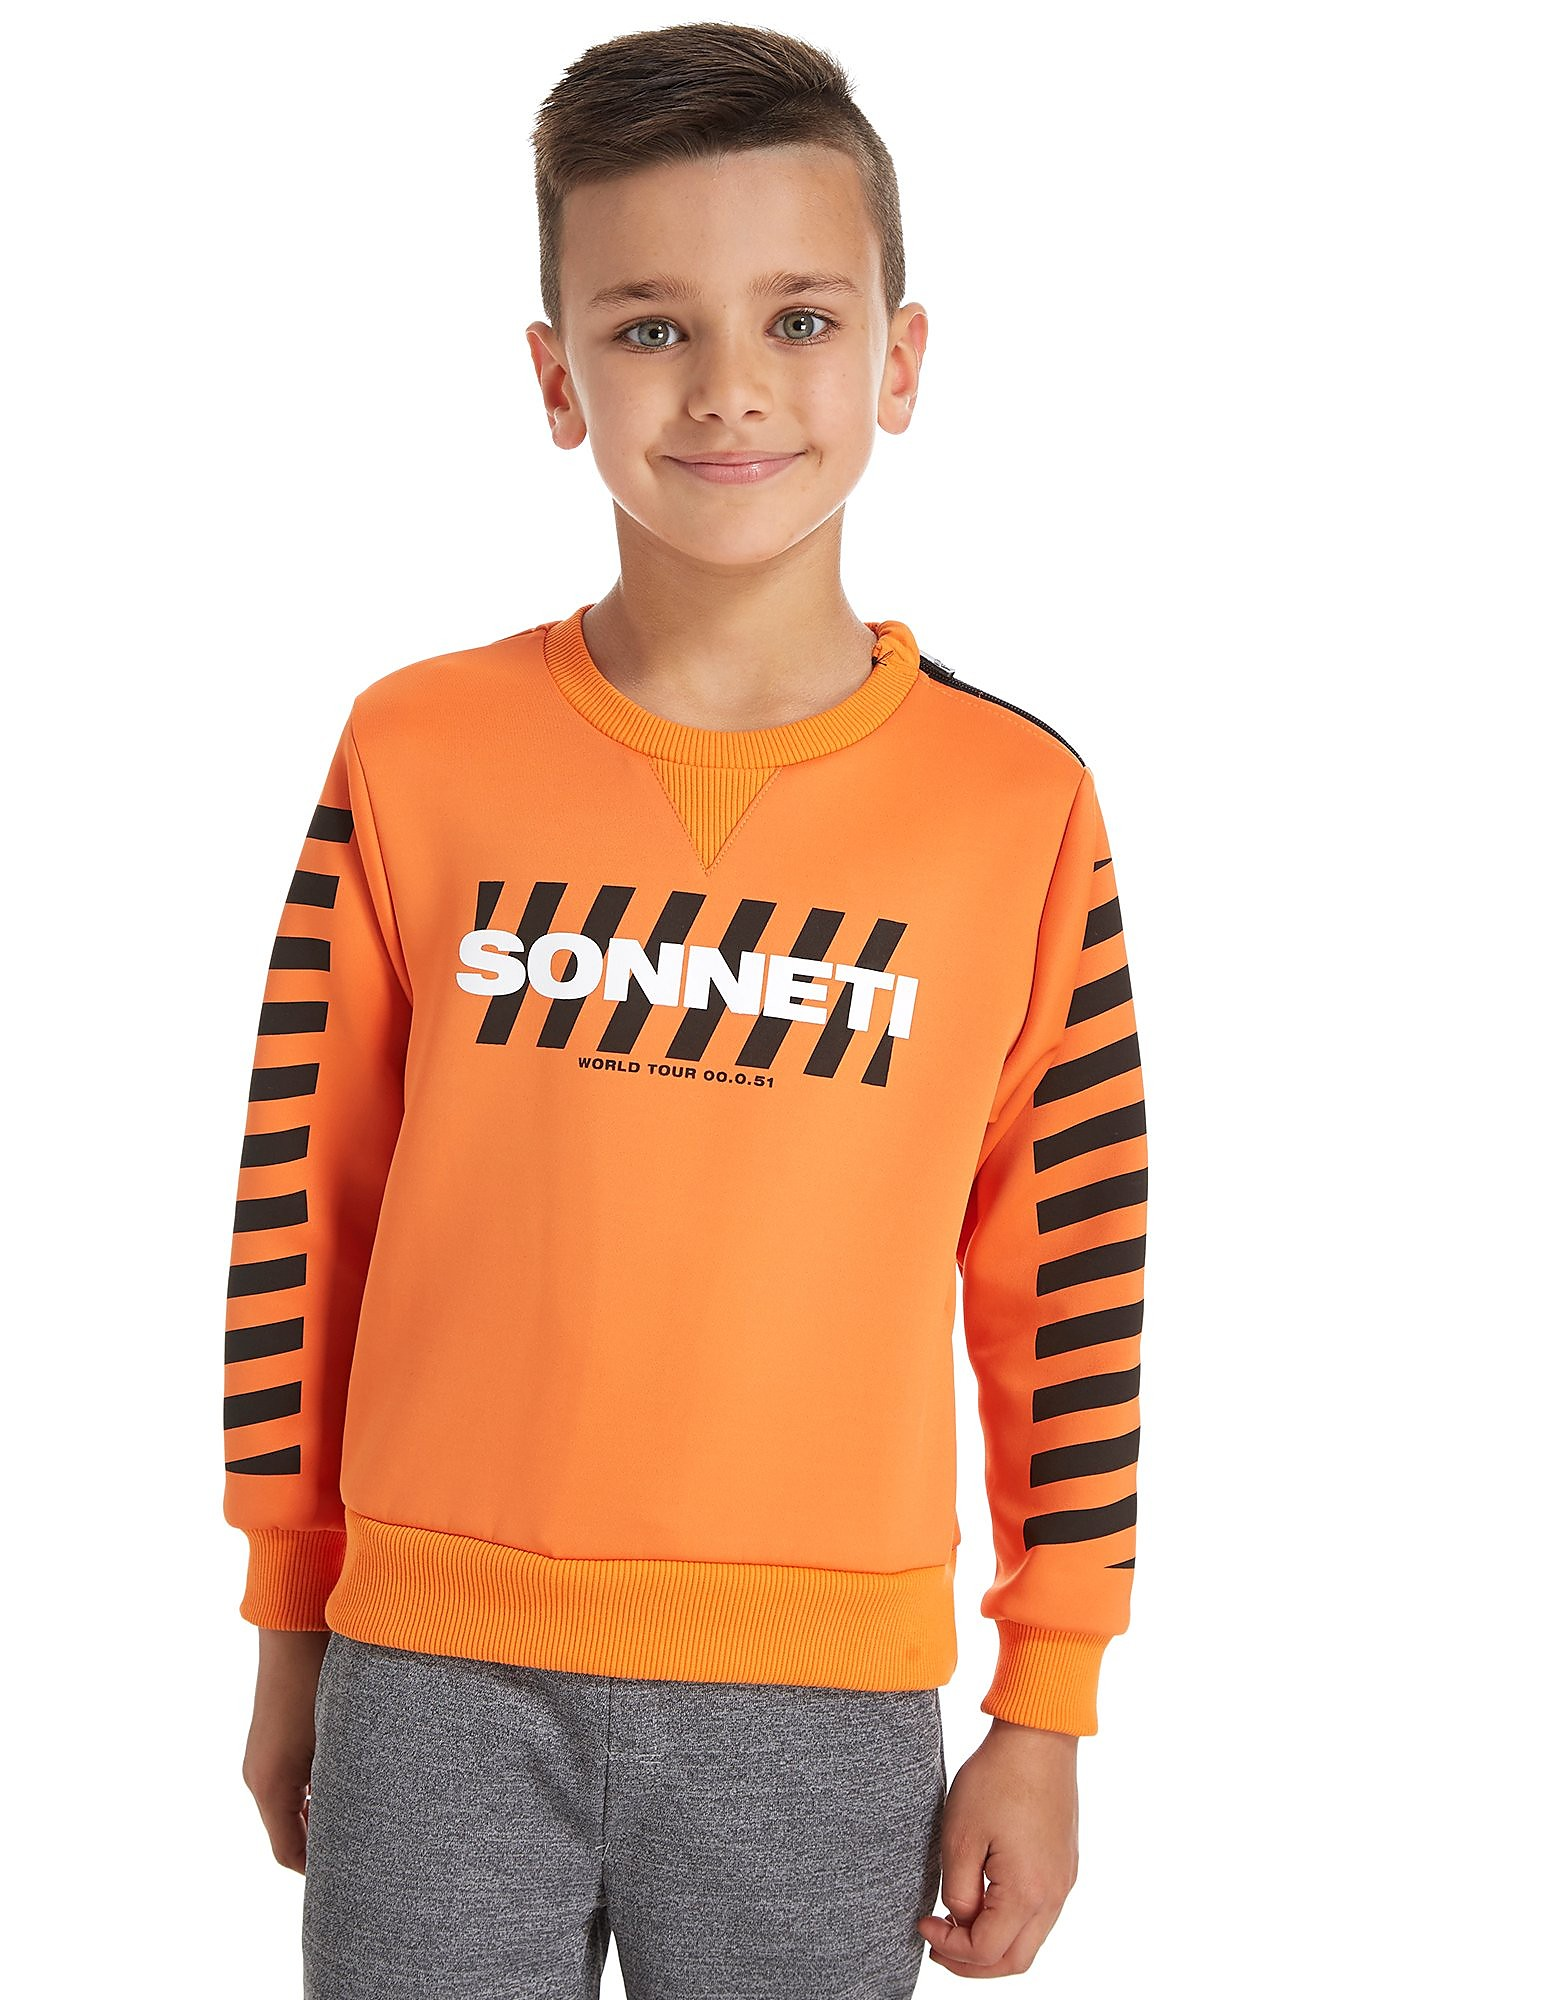 Sonneti Blade Run Sweatshirt Childrens Orange